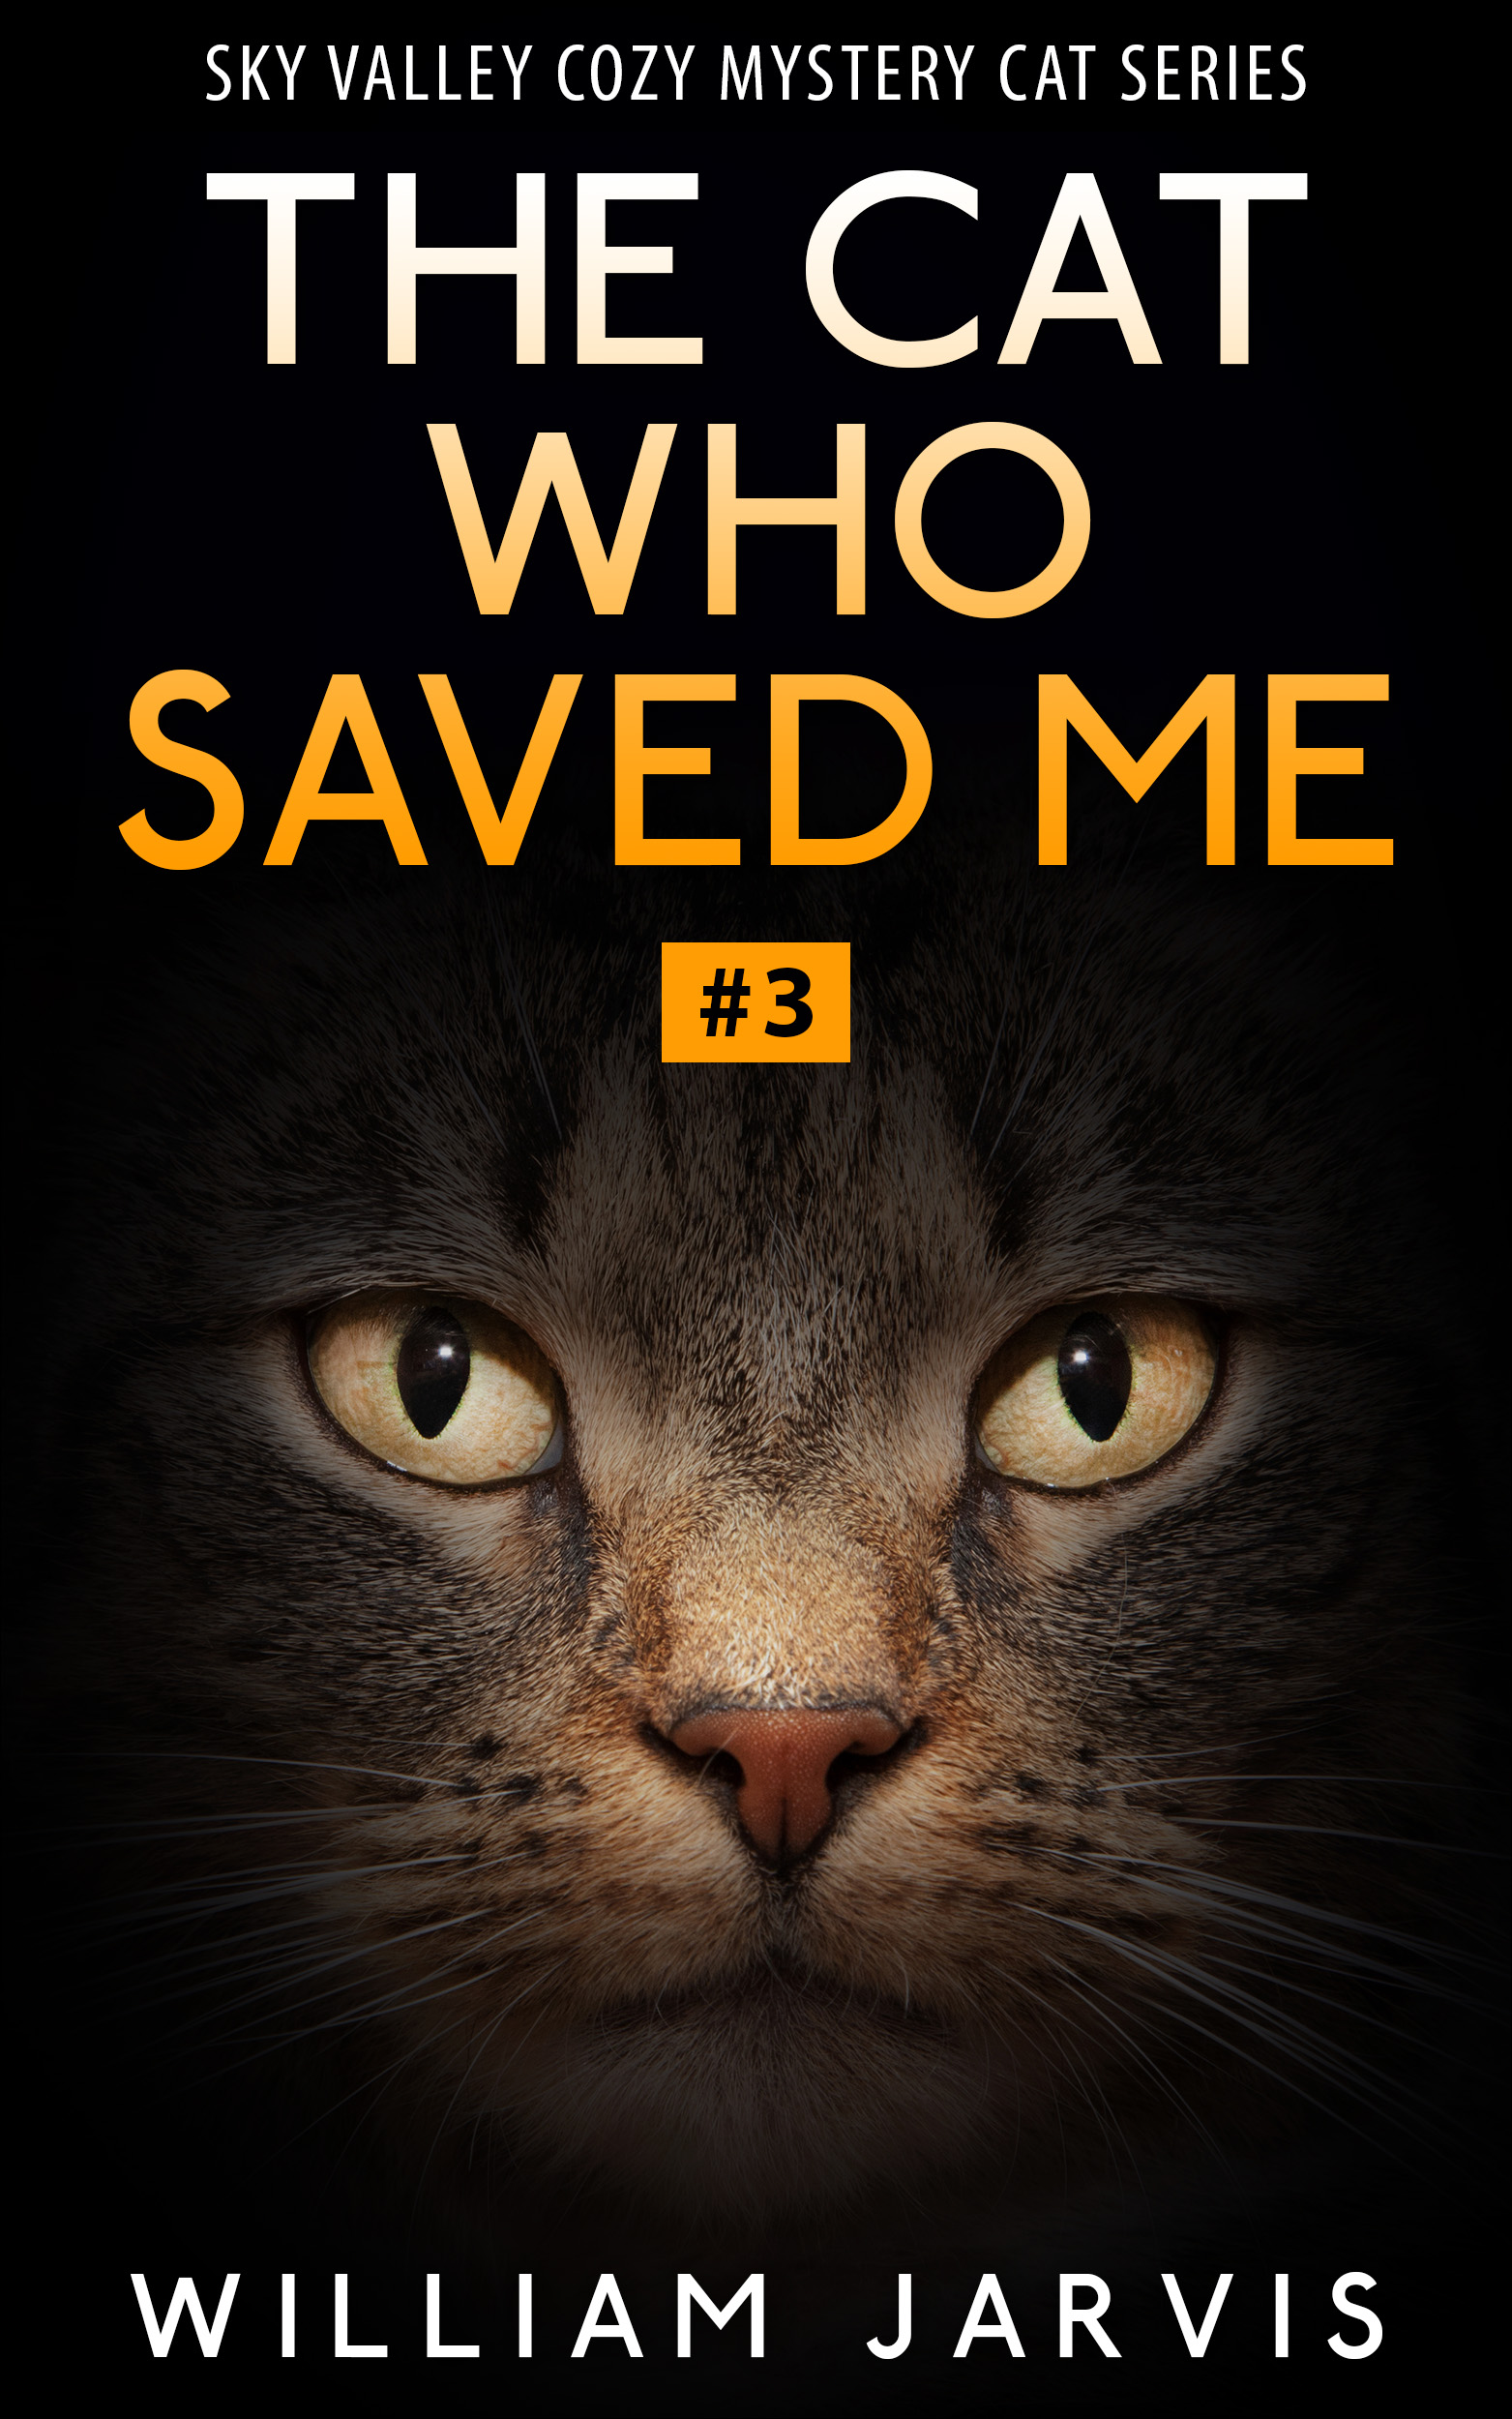 The cat who saved me #3